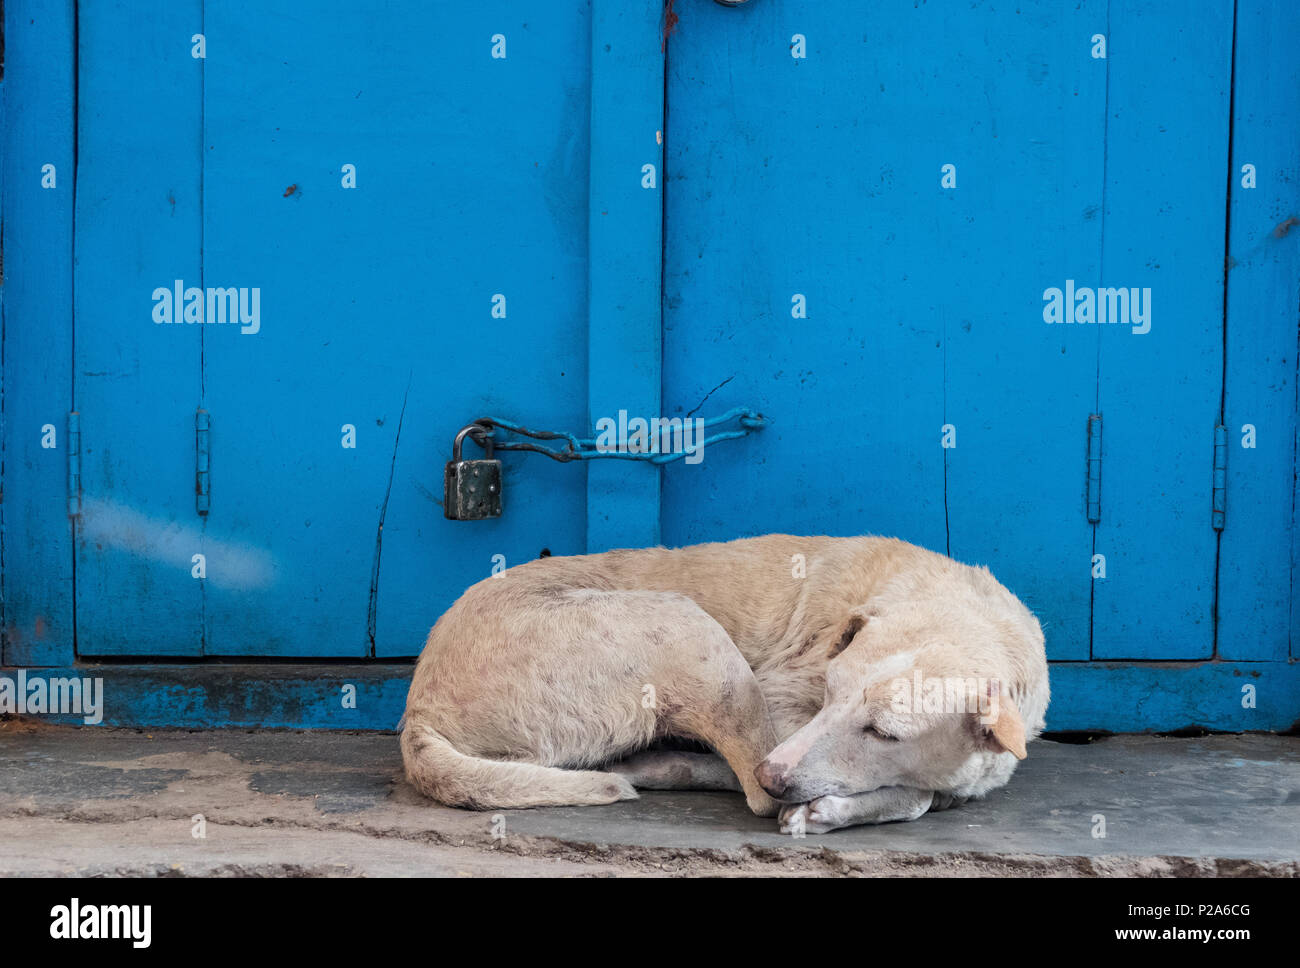 Sleeping dog in front of blue painted doors - Stock Image